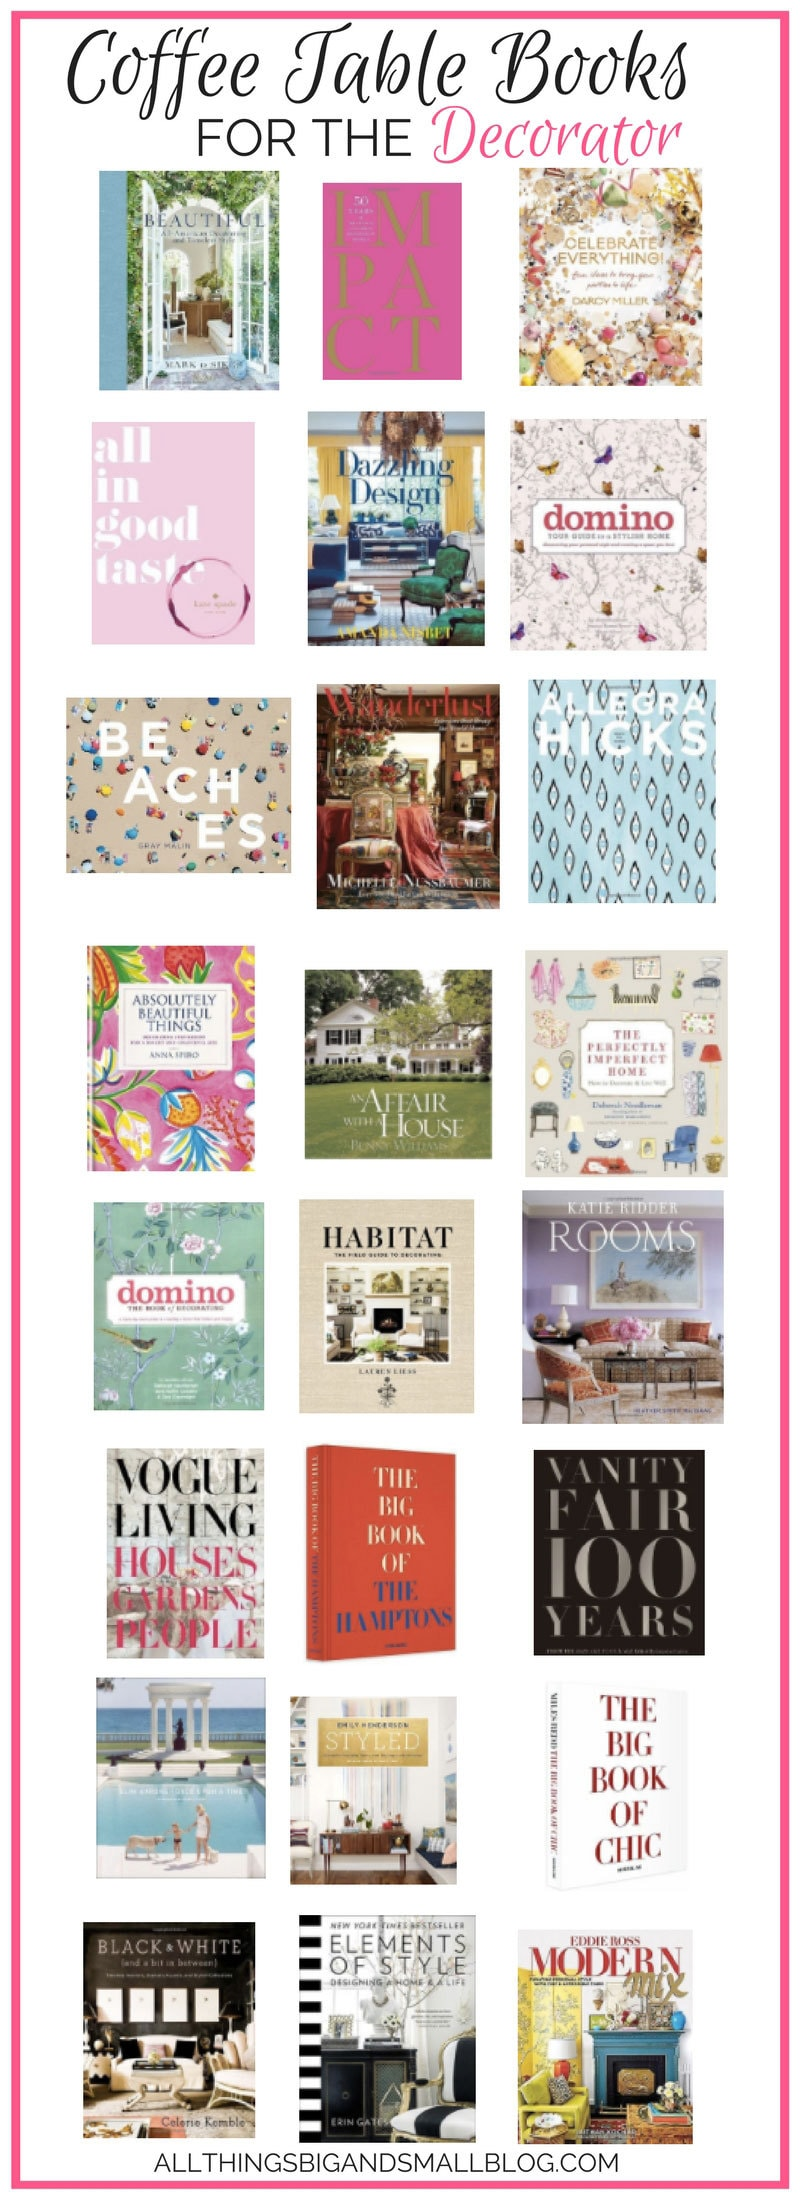 Best Coffee Table Books | Best coffee table books for decor lovers | best interior design books | best decorating books | All Things Big and Small - The Best Coffee Table Books to Read and Decorate Your Home by popular home decor blogger DIY Decor Mom